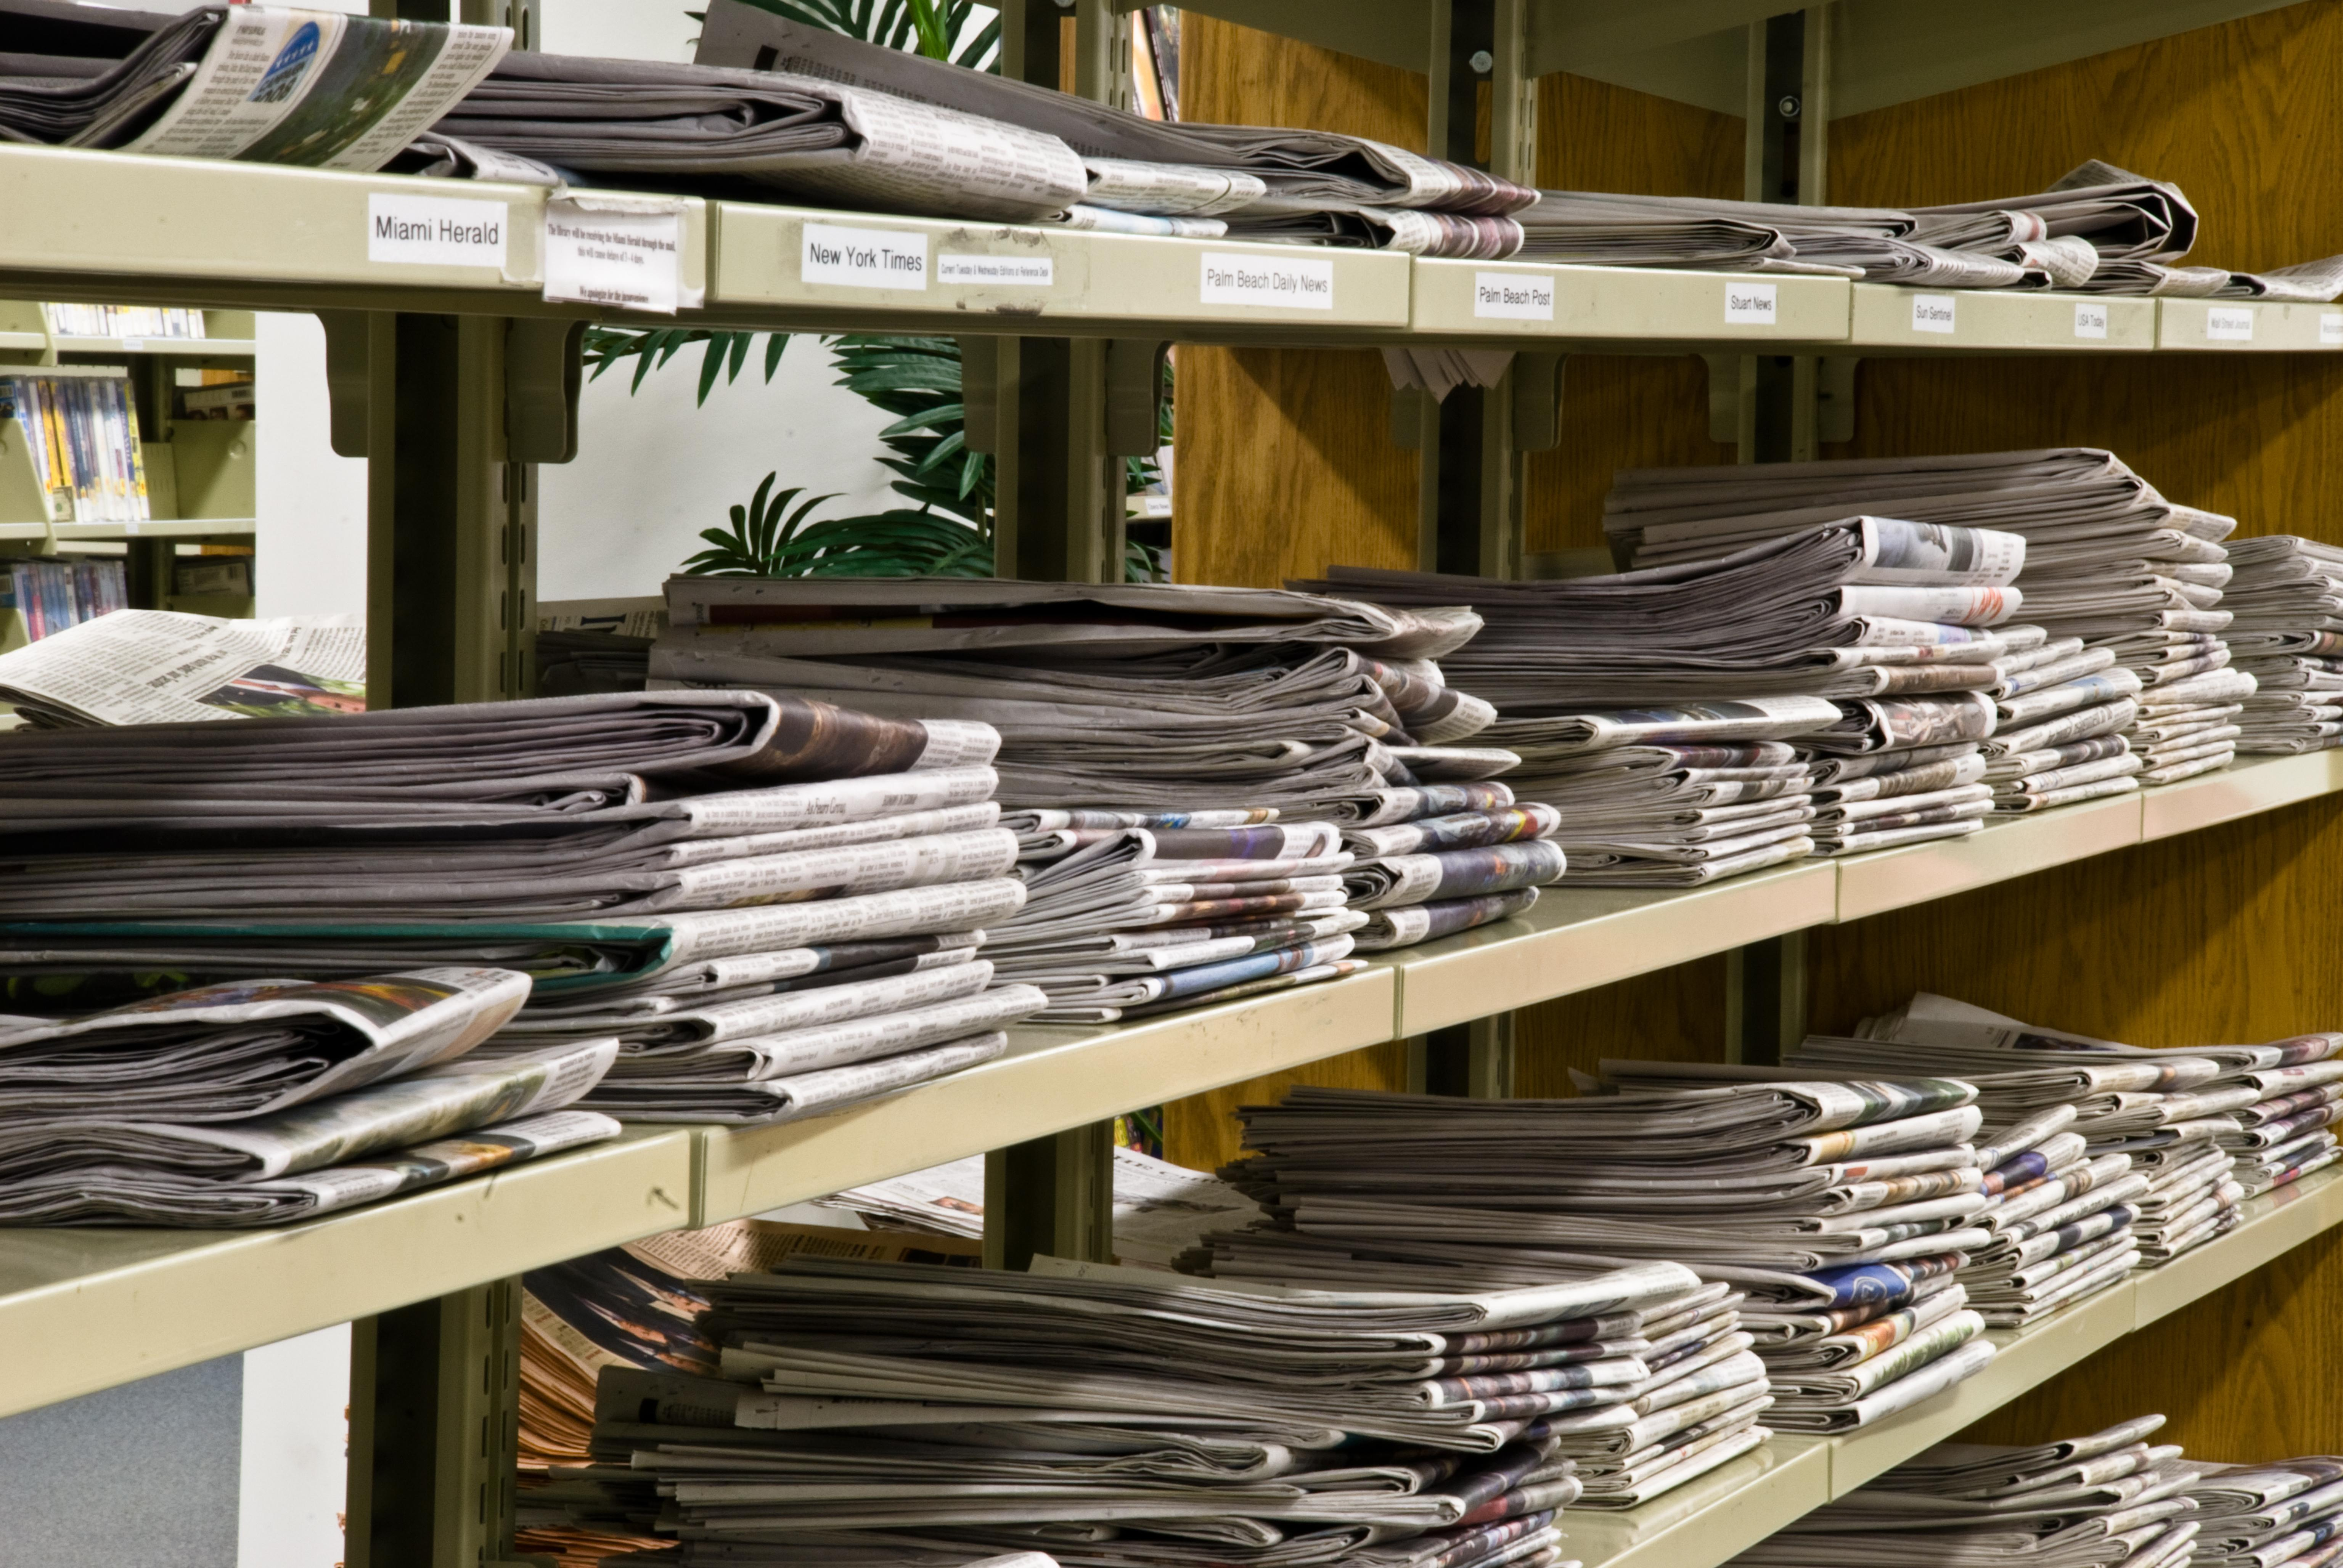 Stacks of newspapers that could be used for insulation